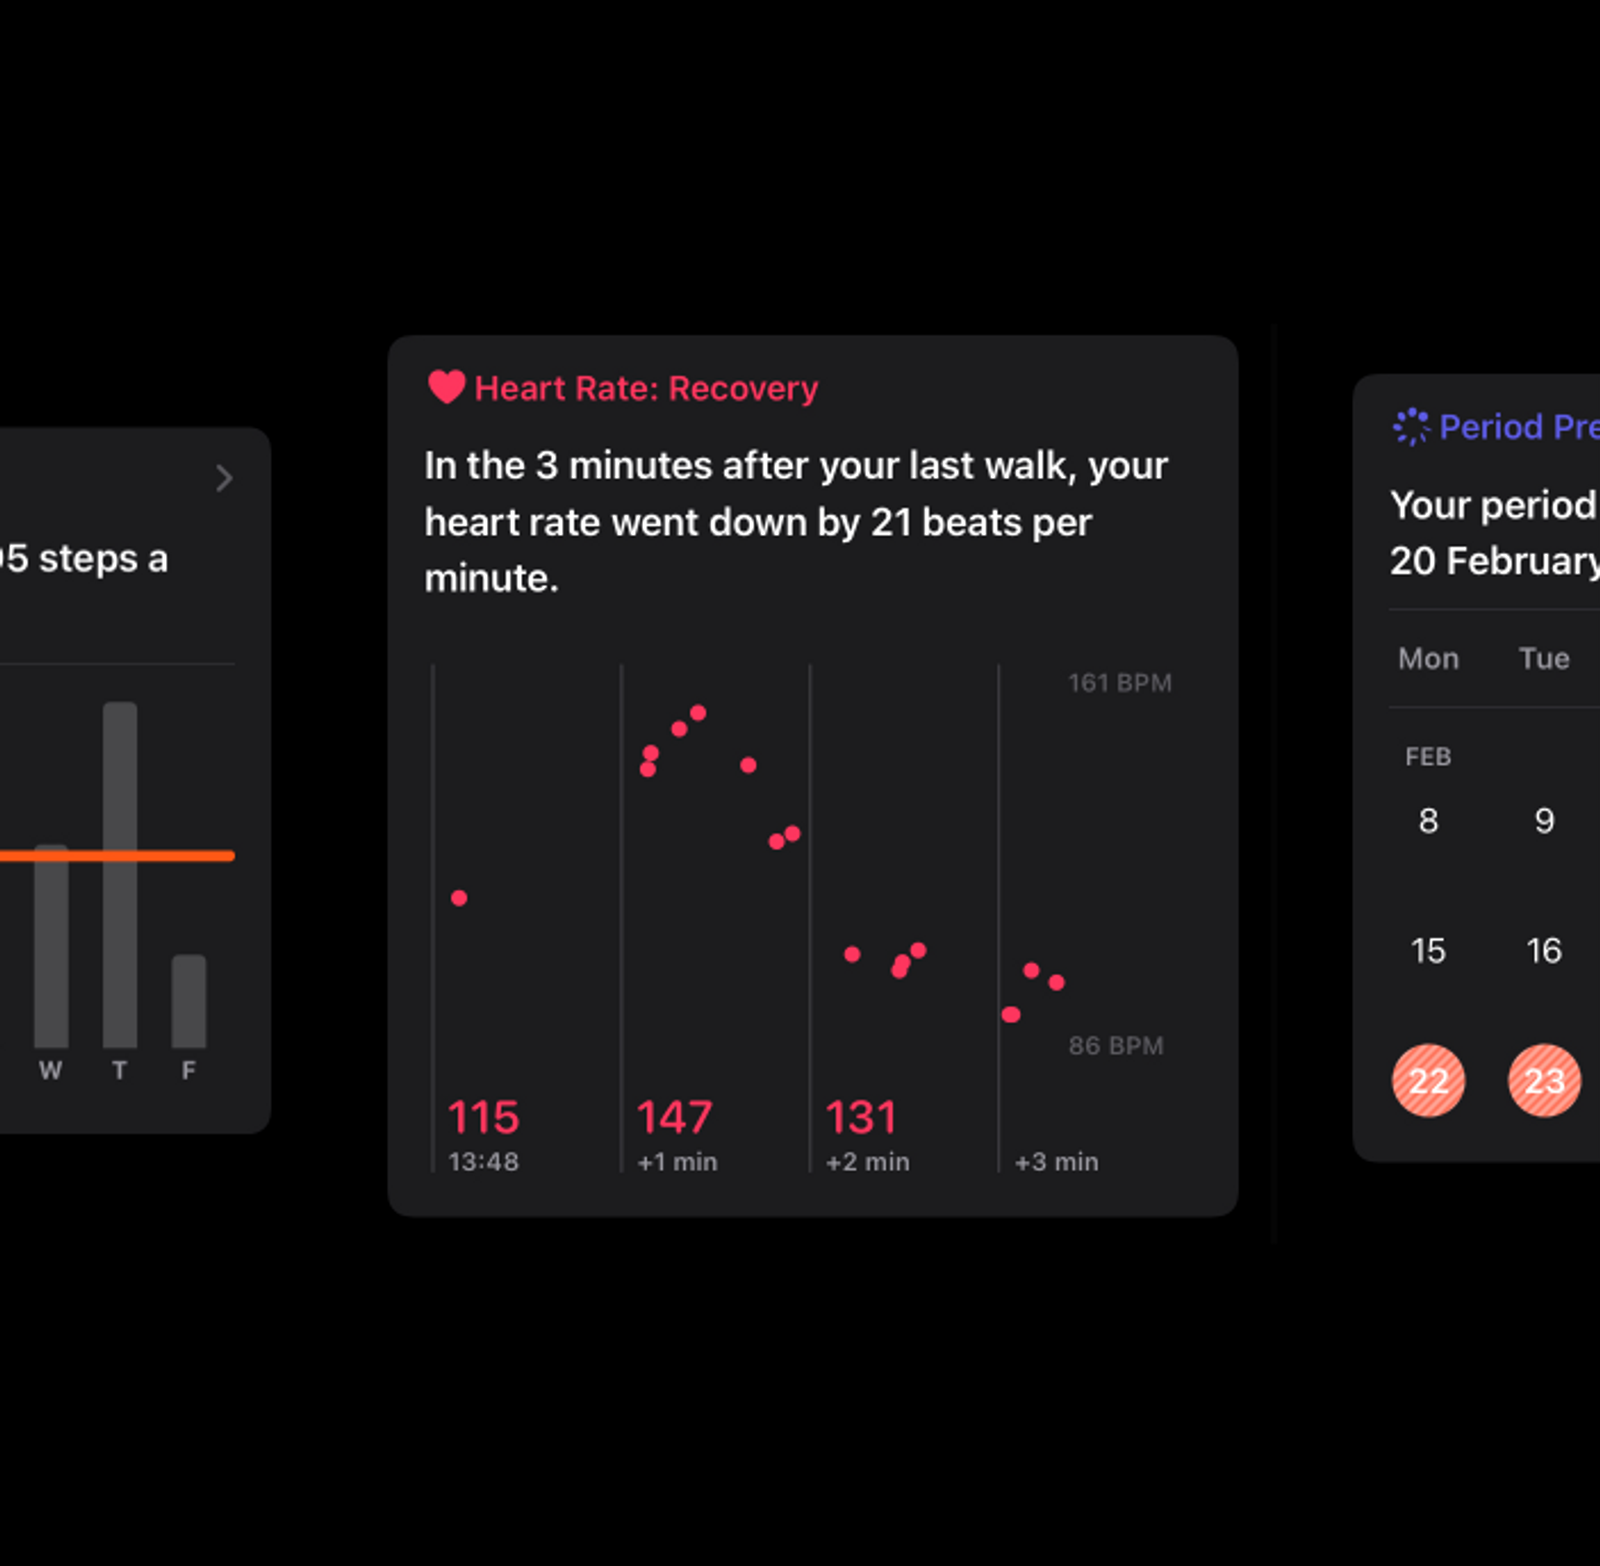 summary card: heart rate recovery, in the 3 minutes after your last walk, your heart rate went down by 21 beats per minute, scatterplot underneath